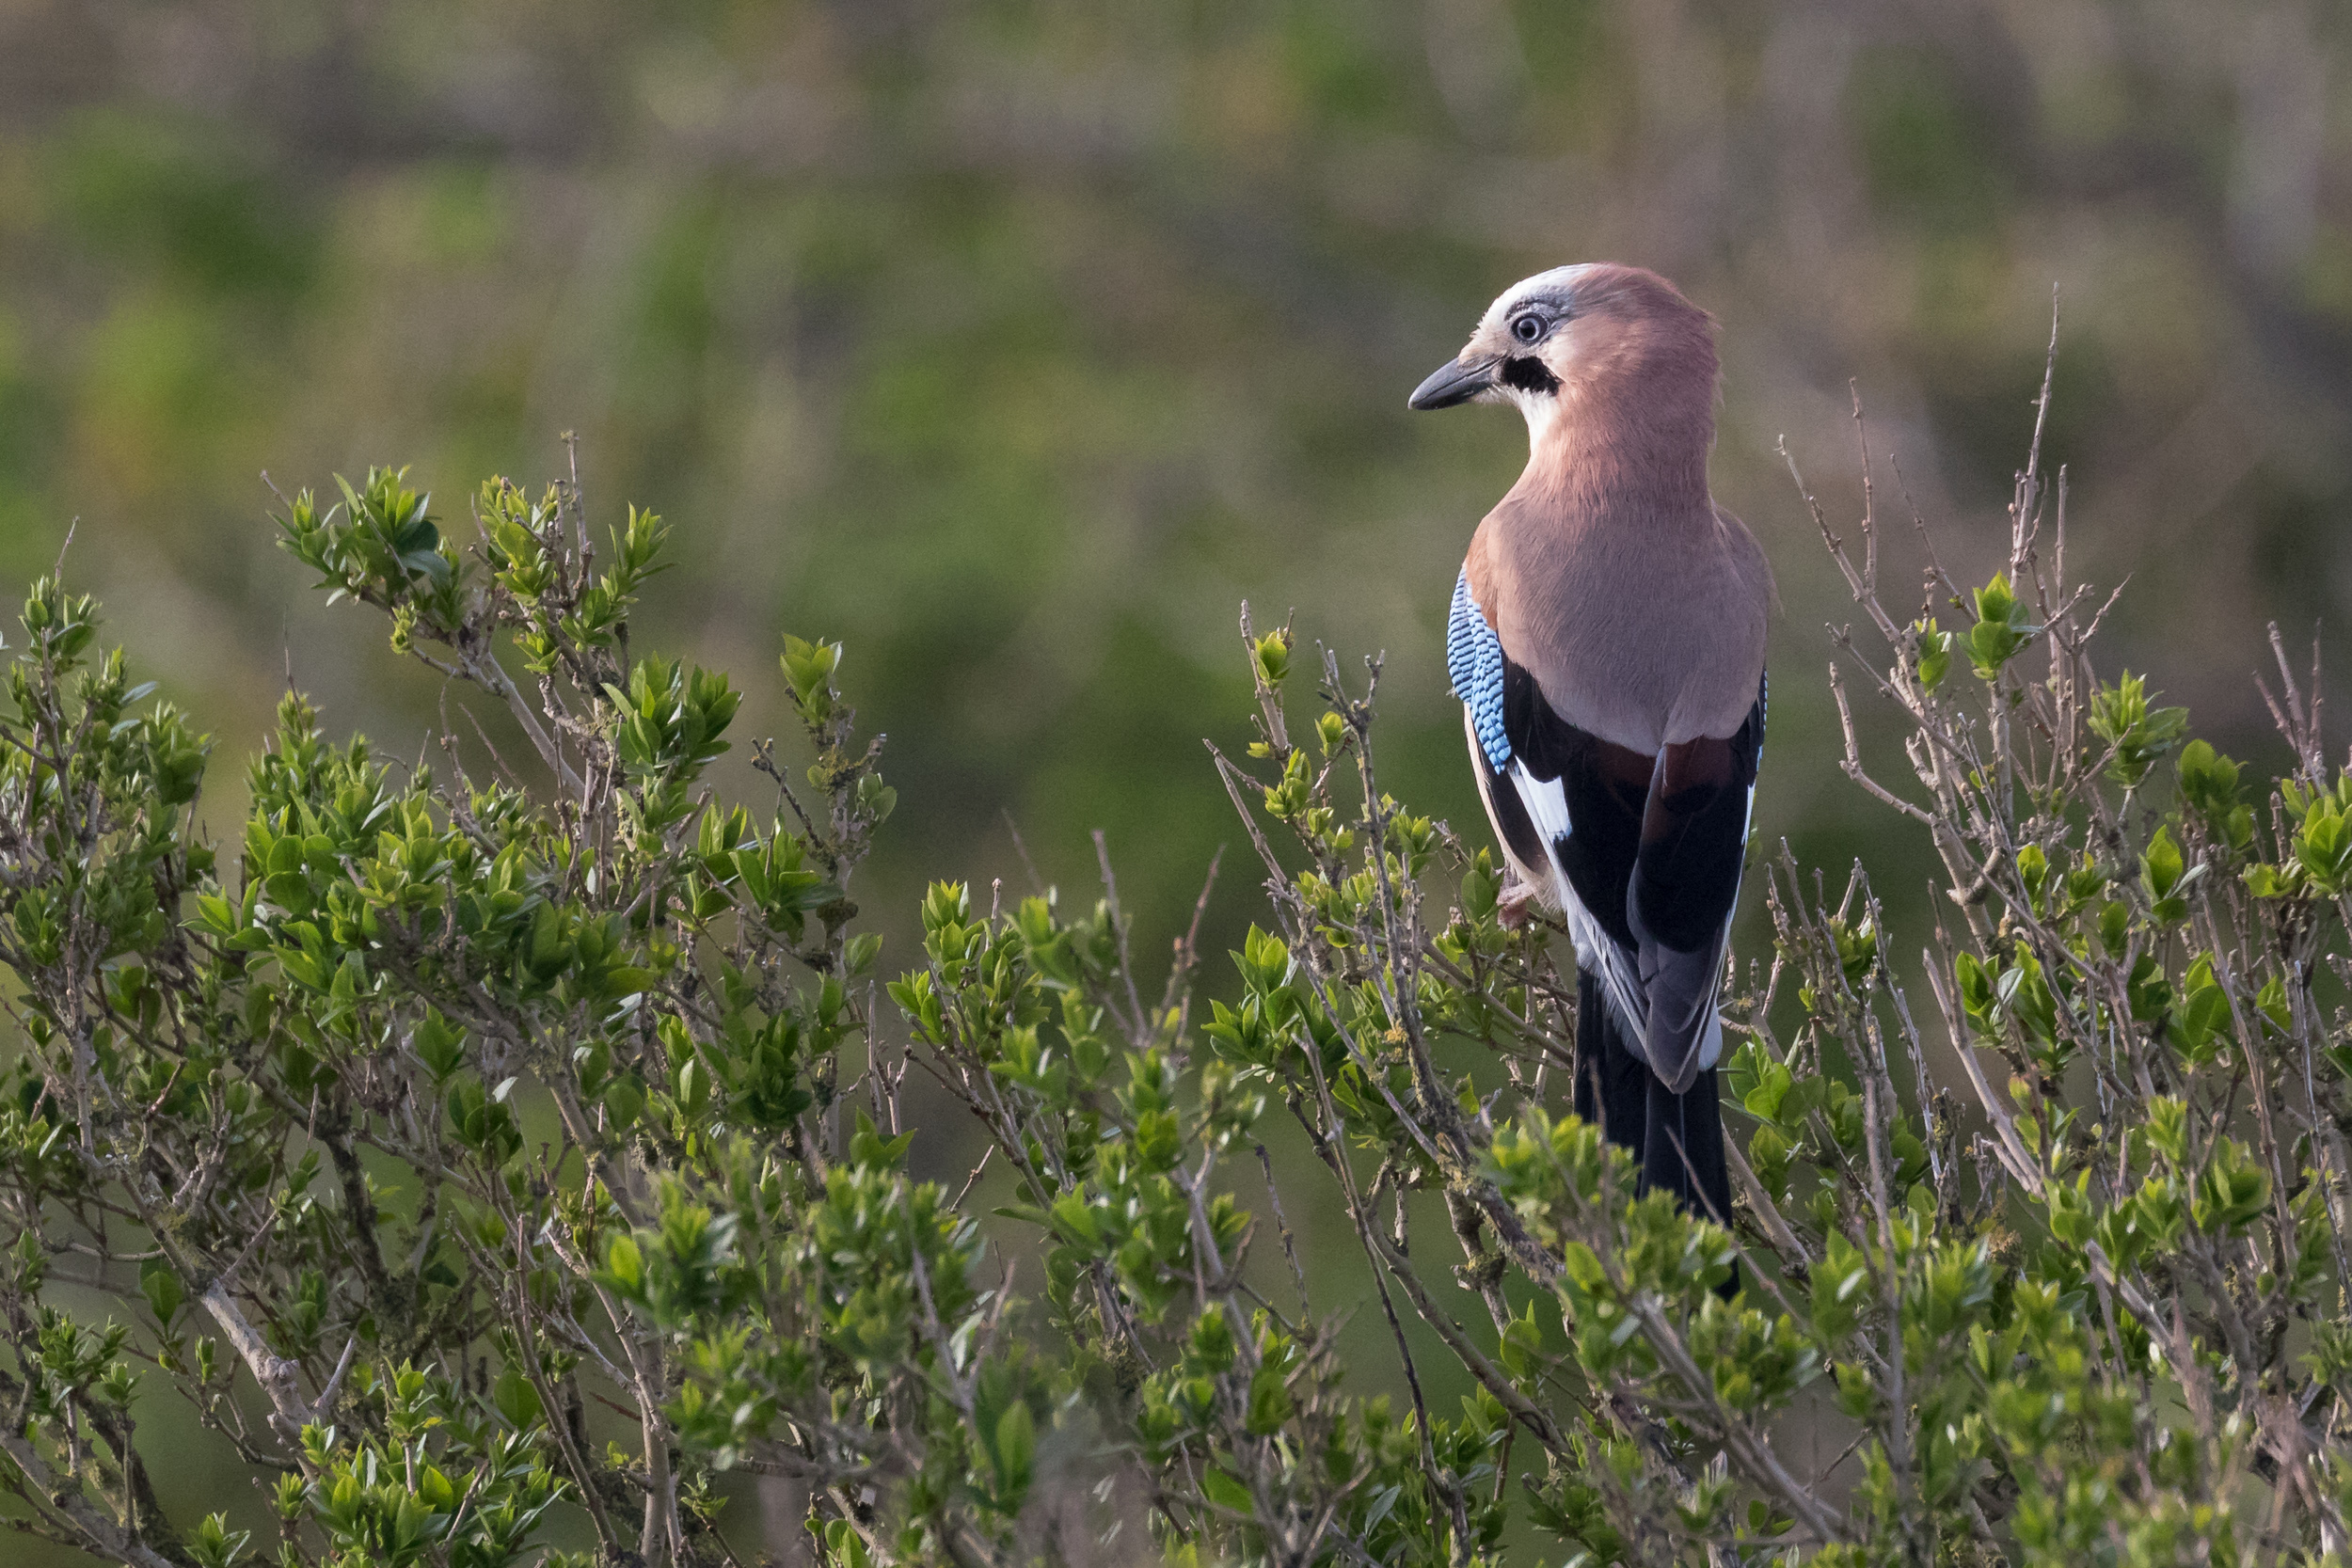 The local pair of Jays is showing quite well, flying continuously back and forth to and from a presumed nest.